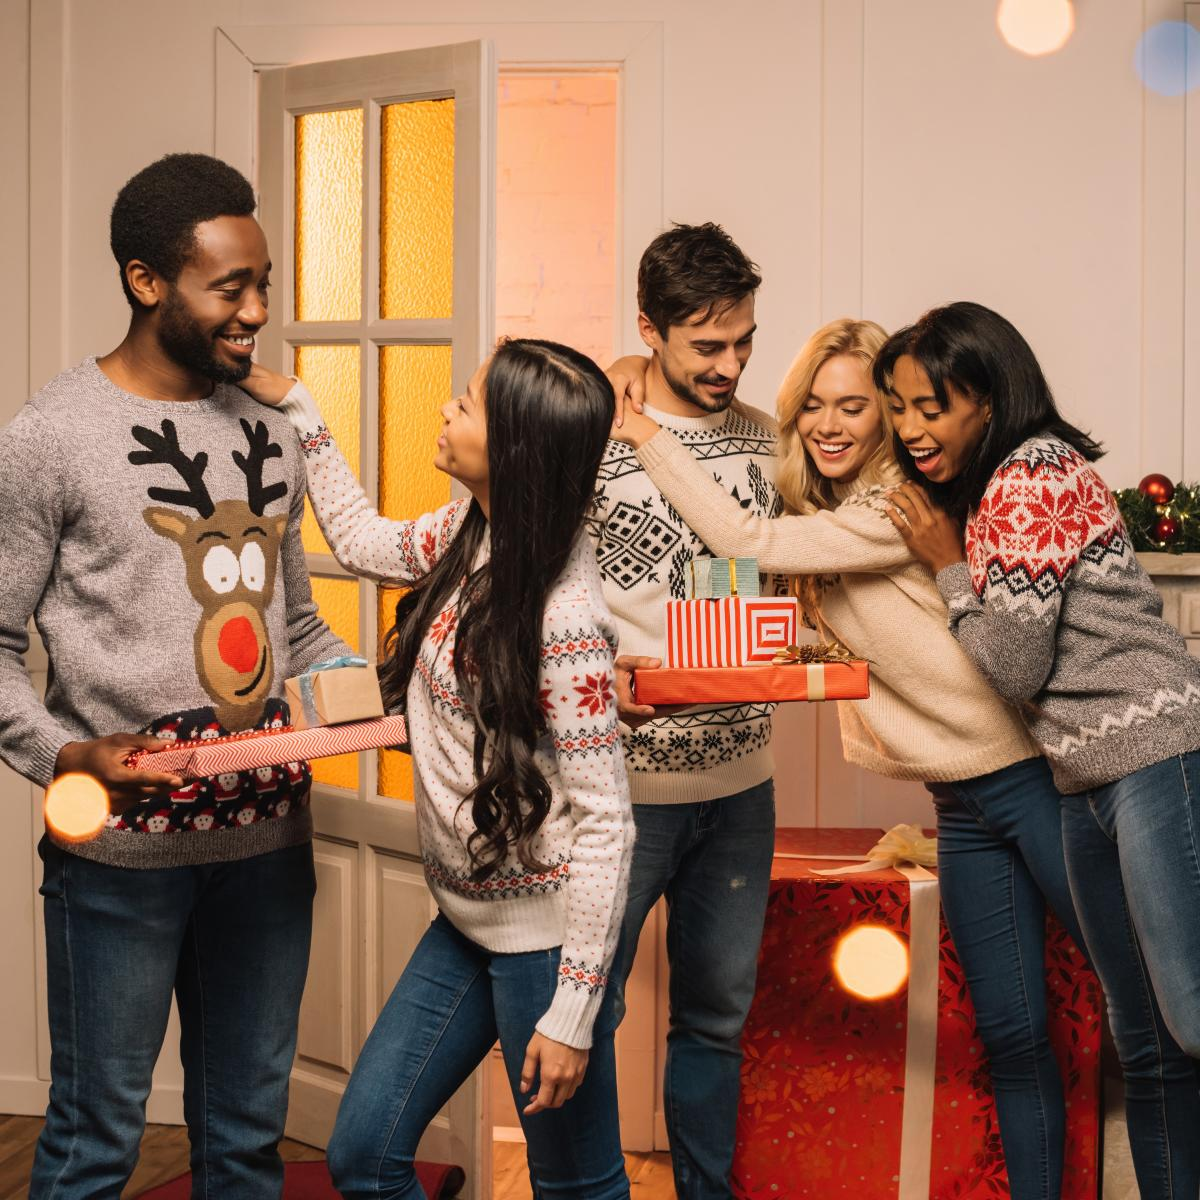 Several friends in tacky holiday sweaters smiling and hugging